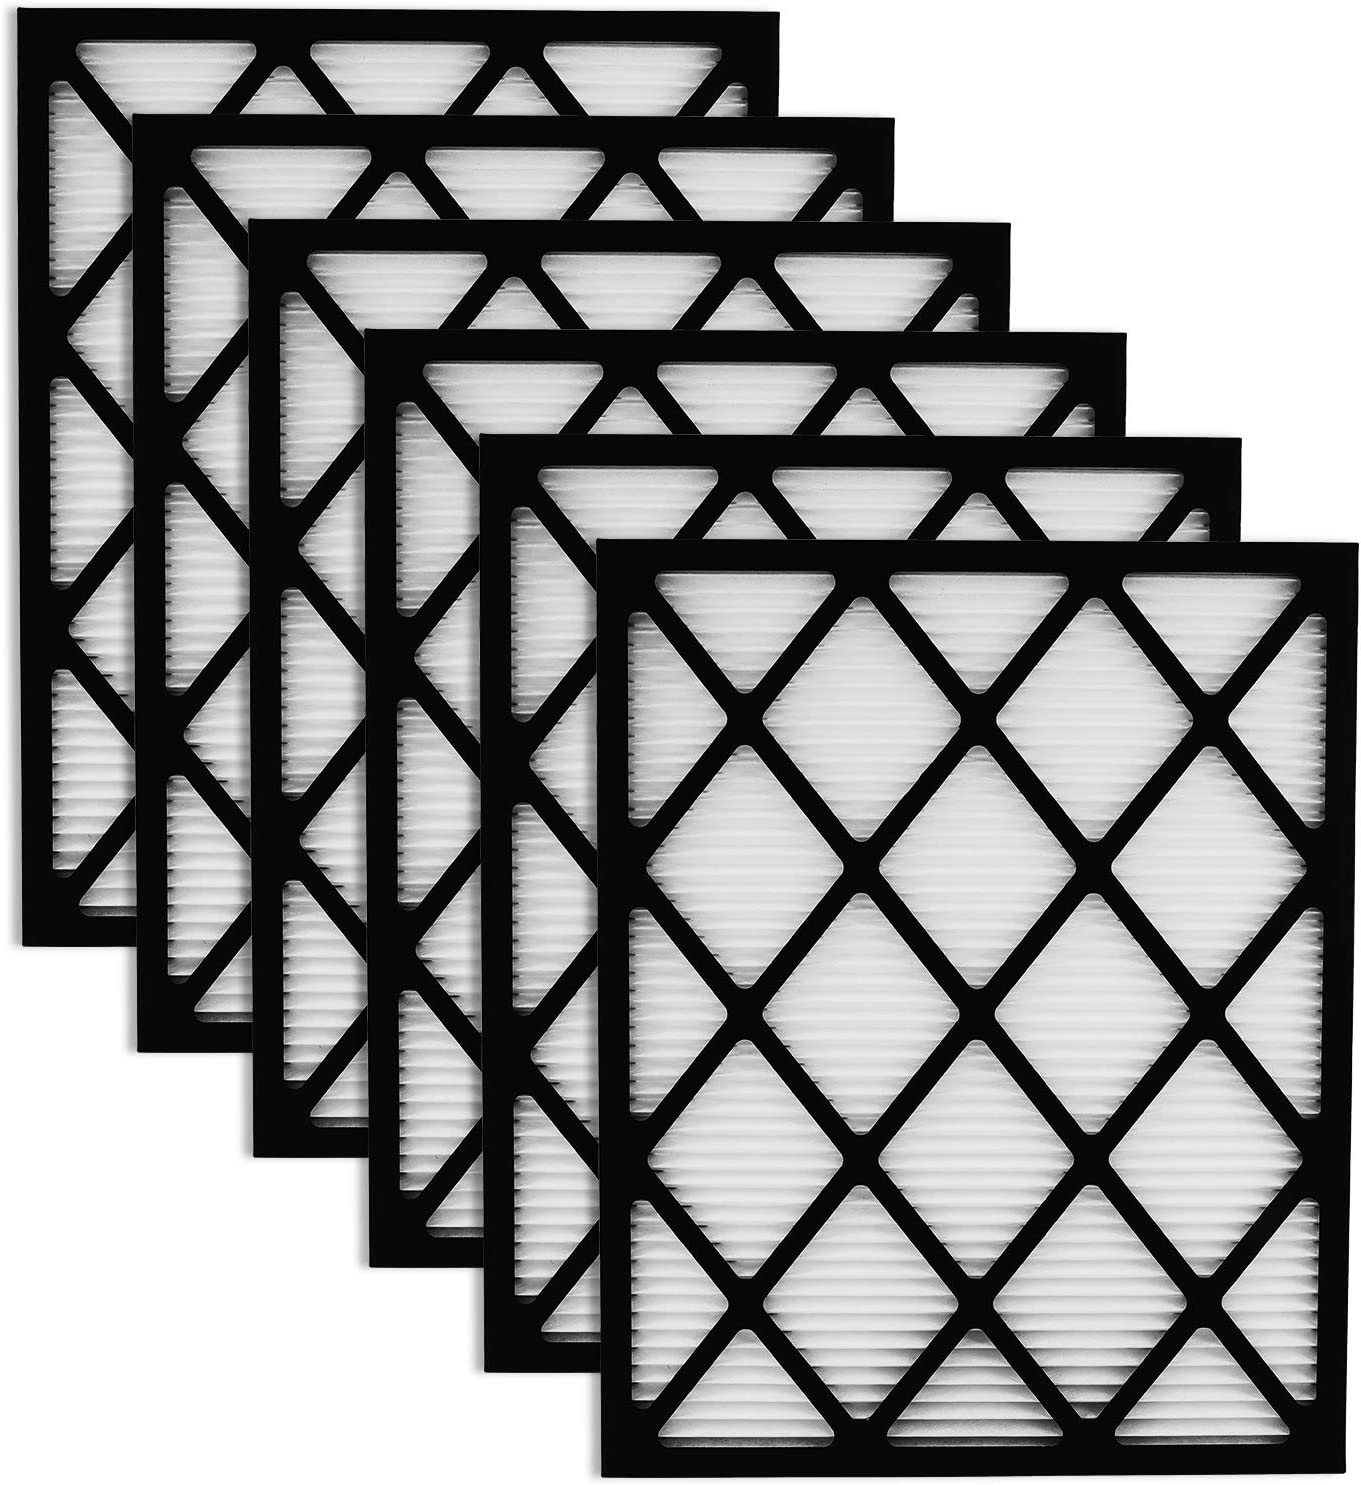 POPFRO Air Filters,20x25x1 HVAC Furnace Air Filter 6 Pack,MERV13,Comparable with MPR 300/600.Clean Living Dust Reduction,Permanent Washable Filters: Home & Kitchen